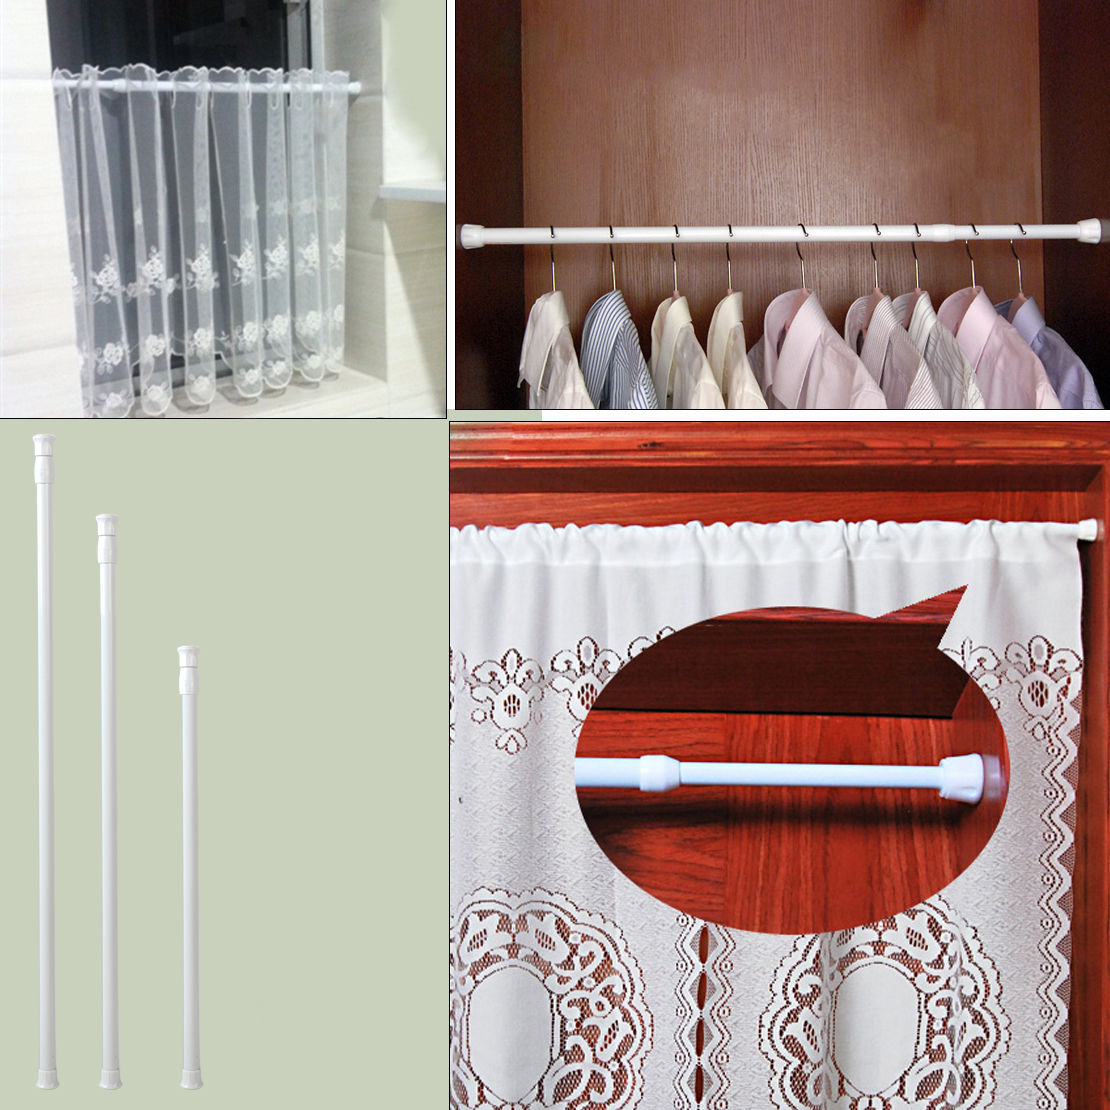 High Carbon Steel Adjustable Rod Tension Bathroom Curtain Extensible Rod Hanger